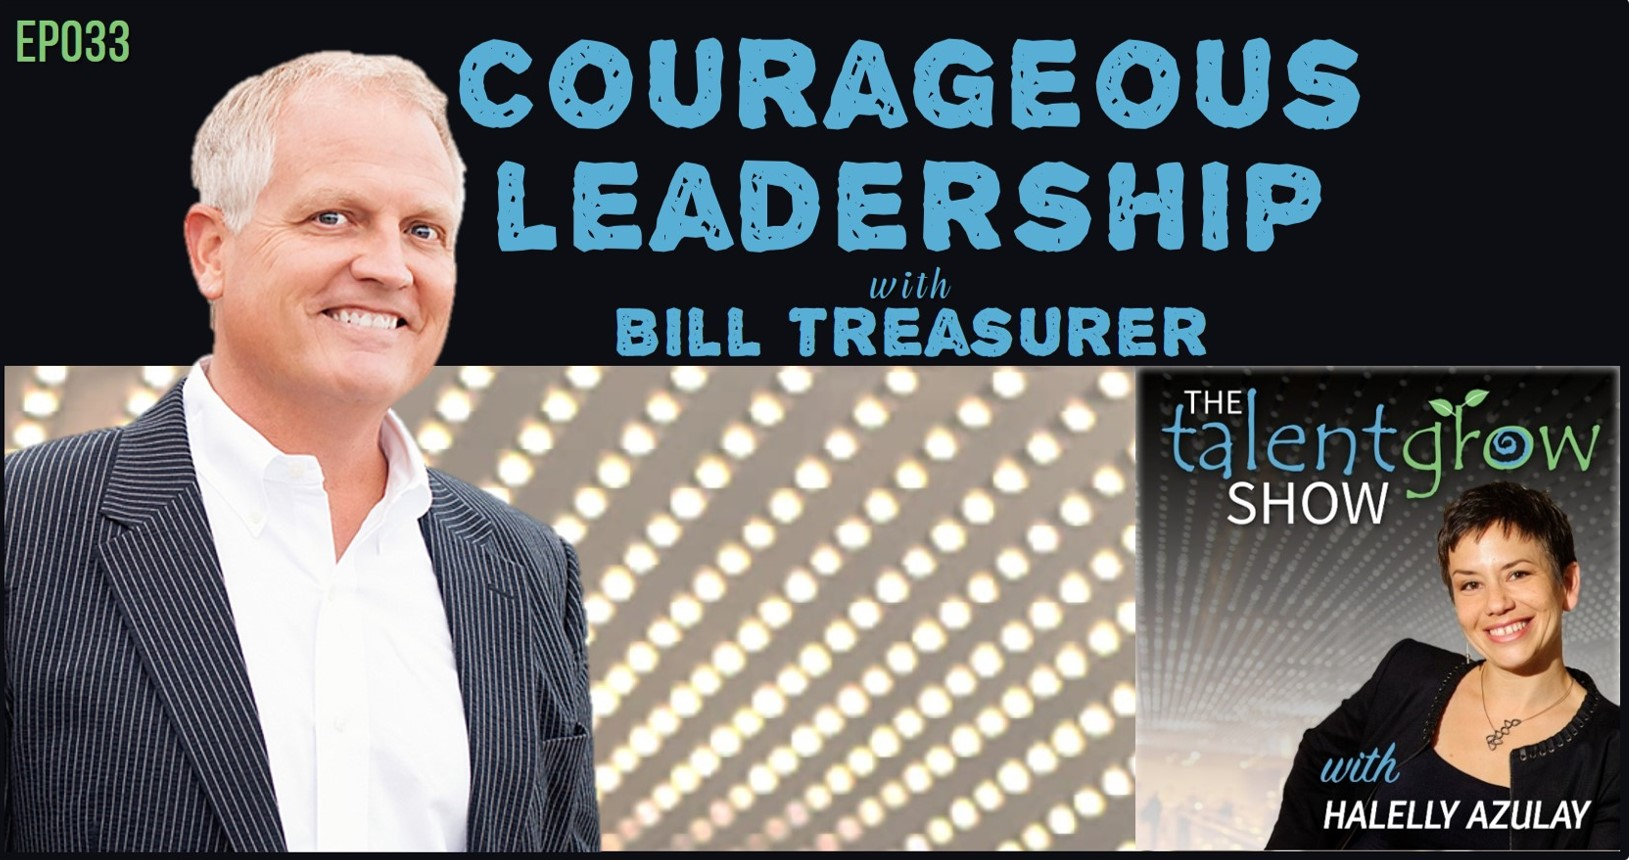 TalentGrow Show episode 33 Courageous Leadership with Bill Treasurer hosted by Halelly Azulay